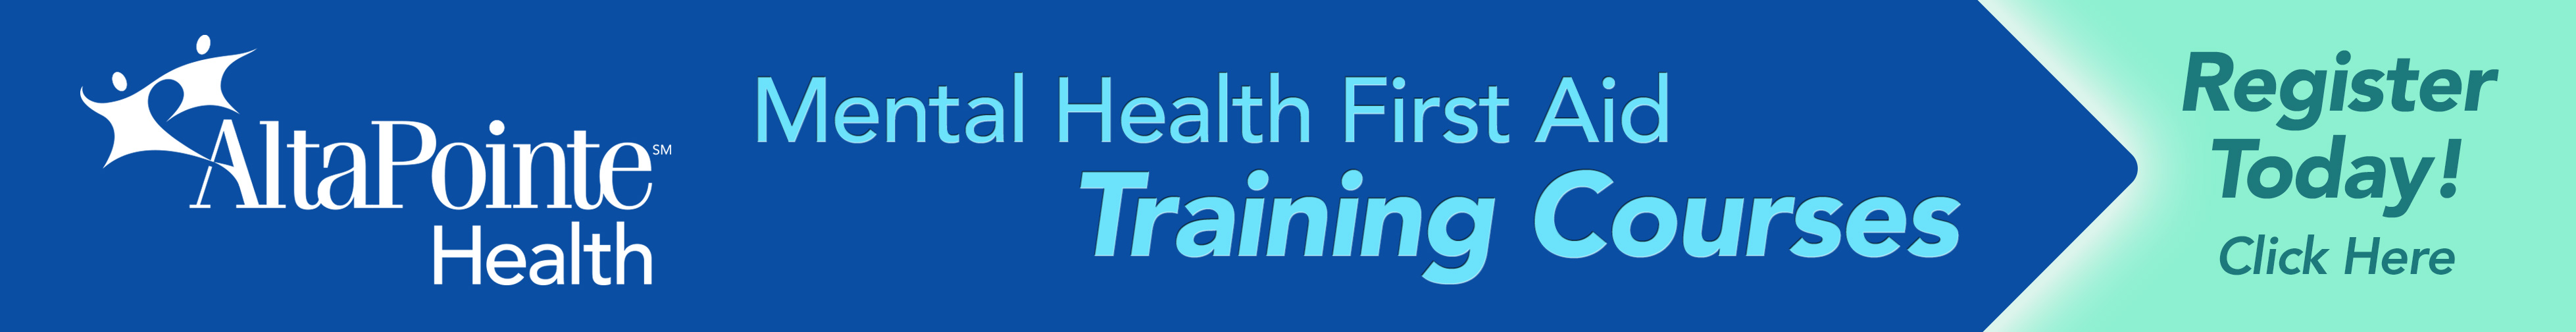 Mental Health First Aid - AltaPointe Health